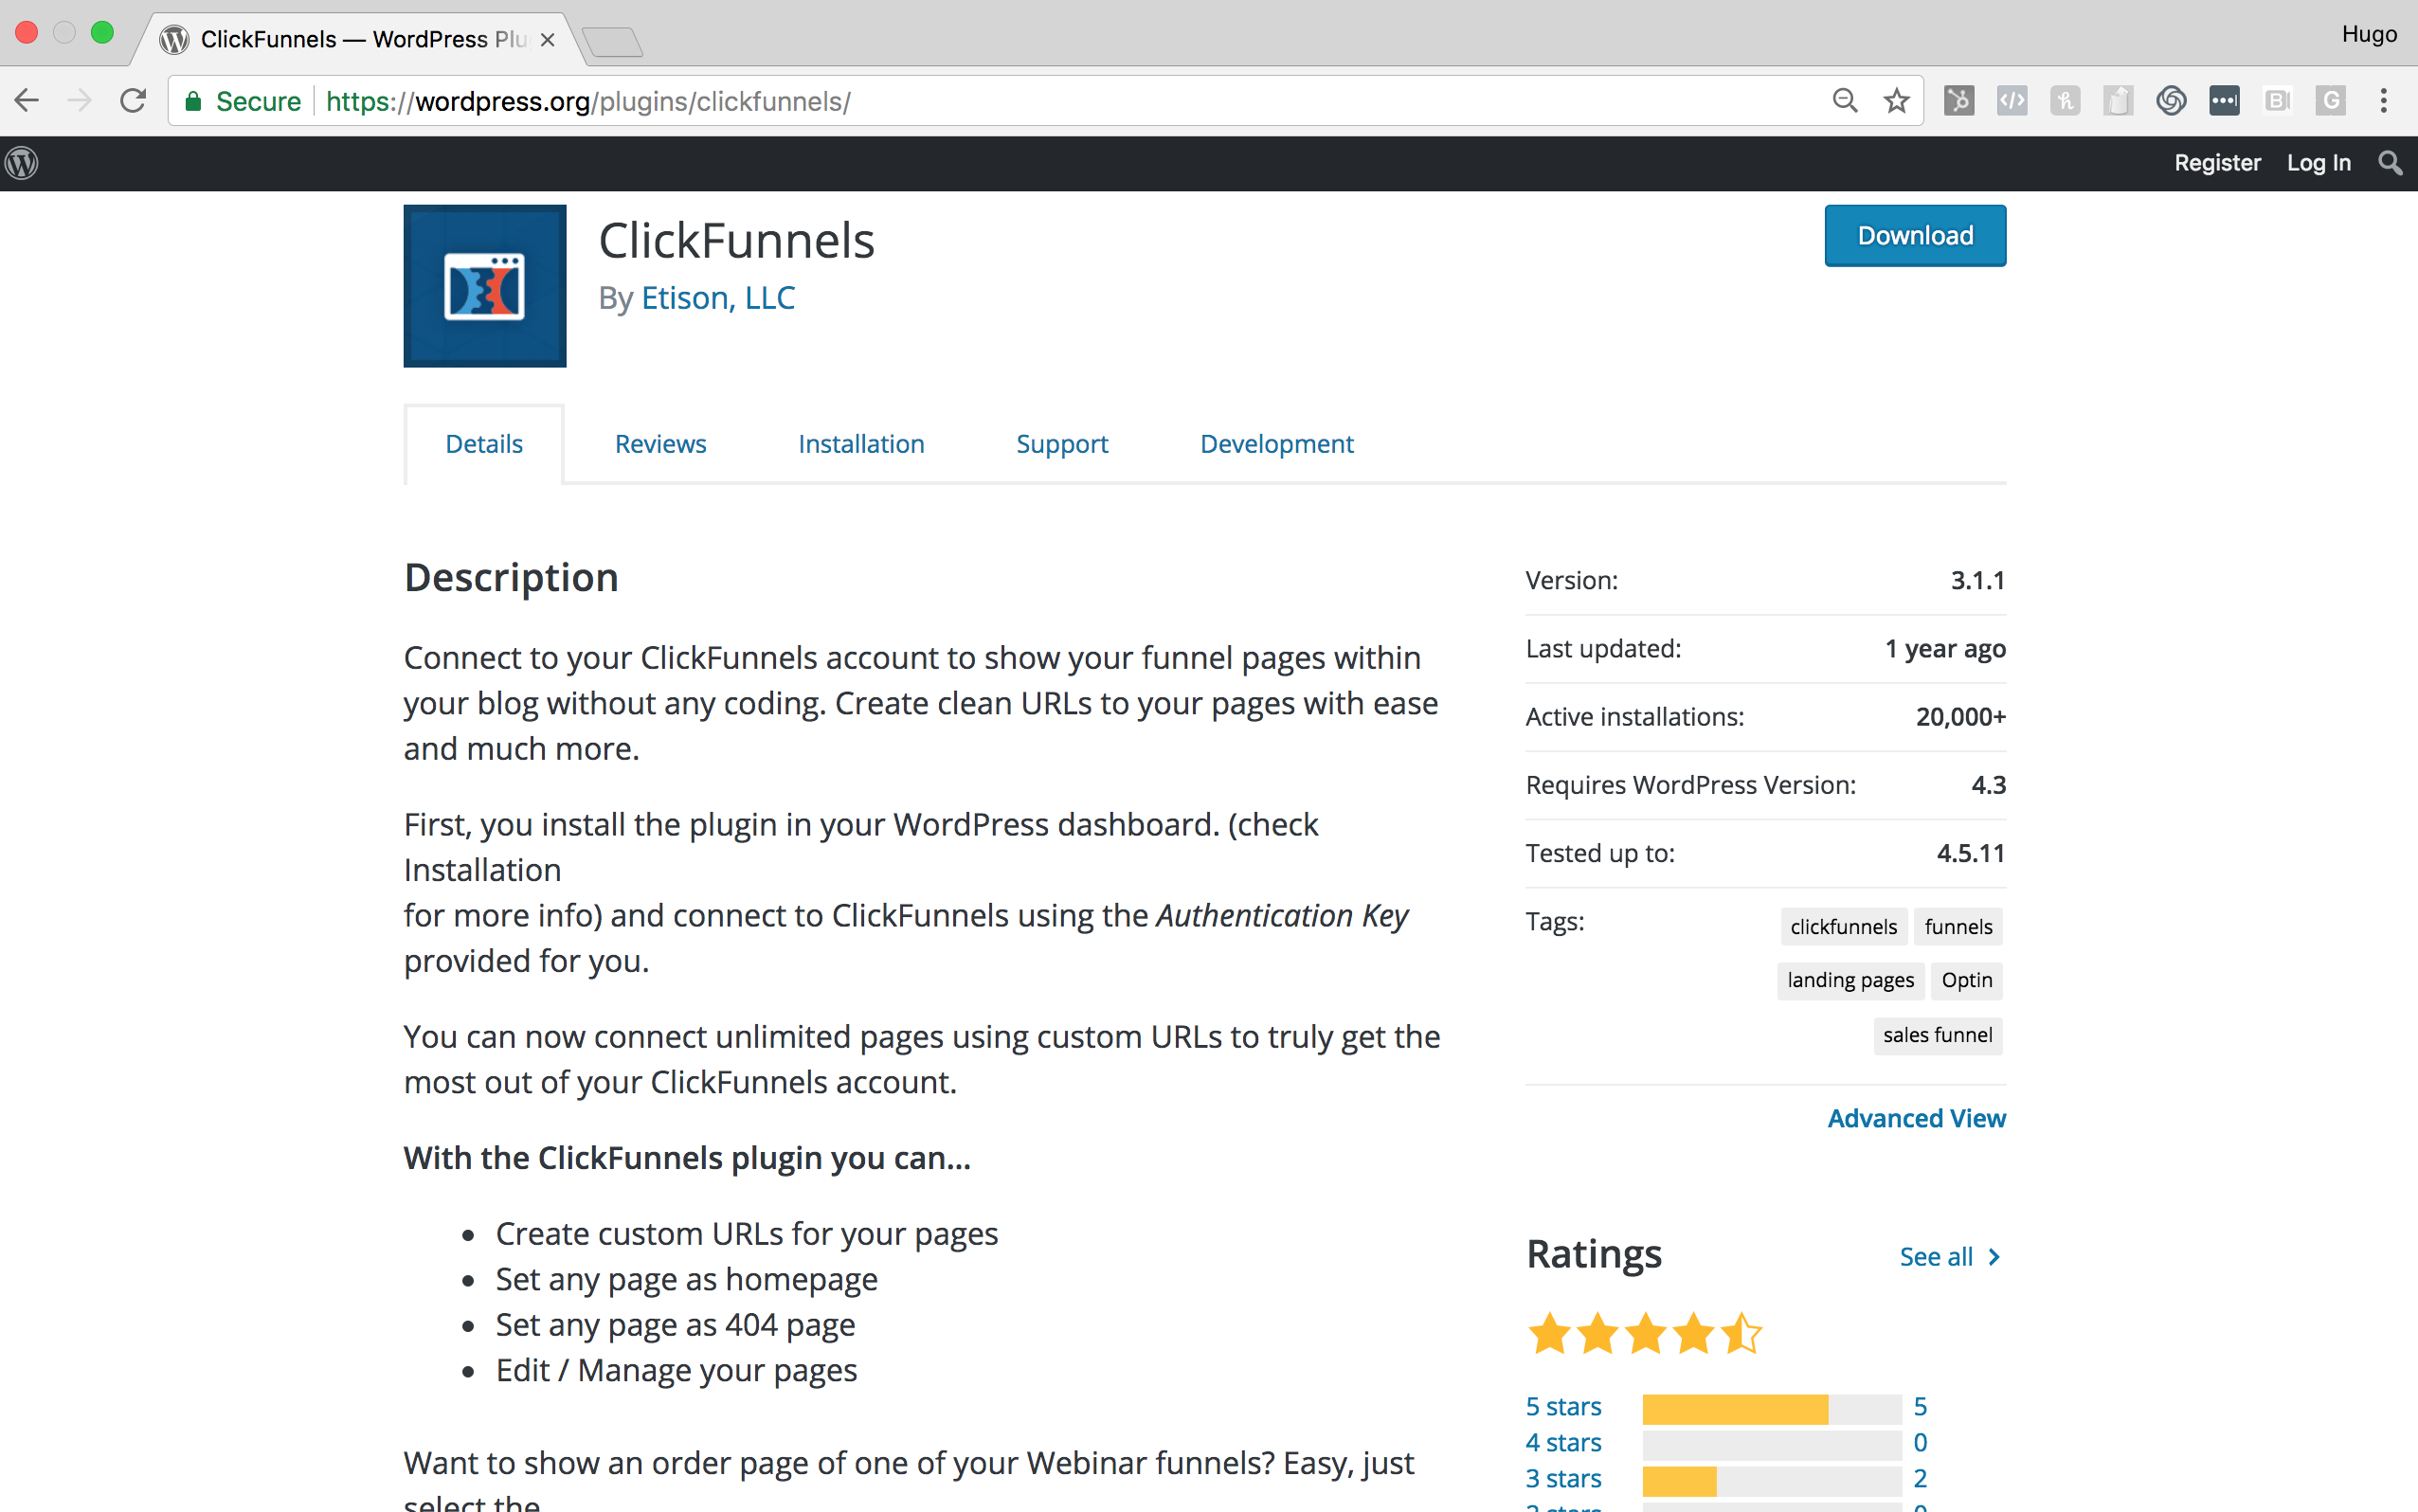 How To Add A Manager In Clickfunnels